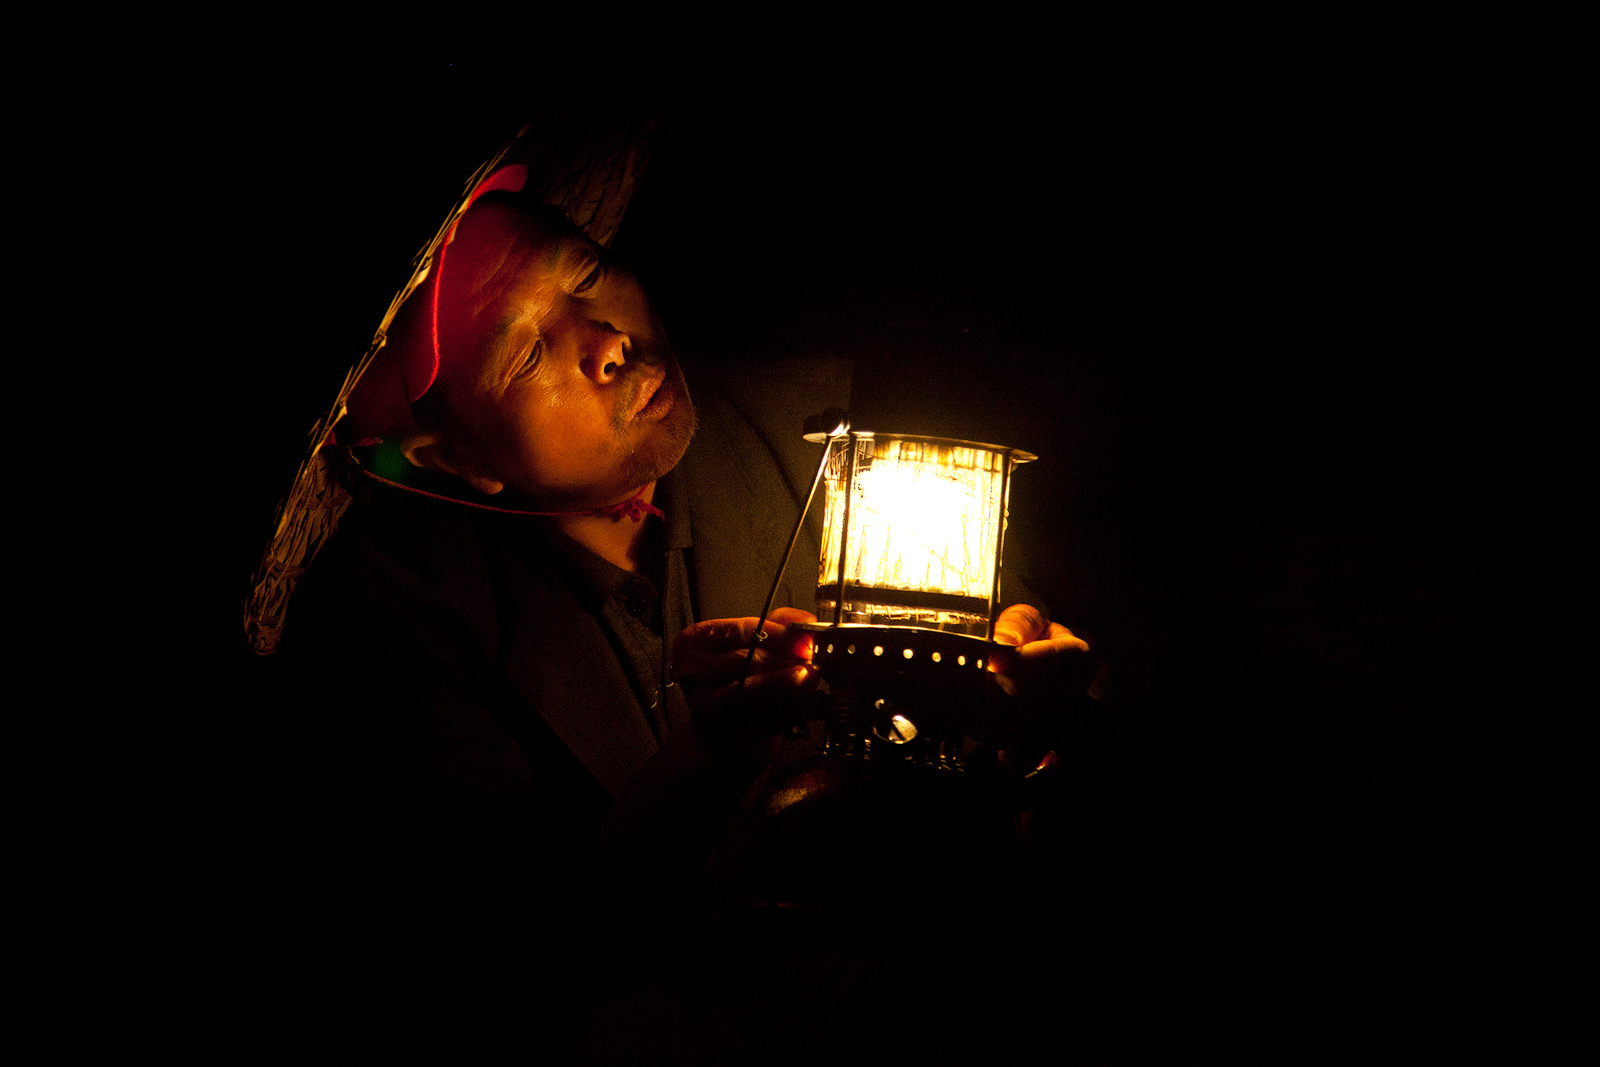 asia,china,chinese,cormorant,dark,fish,fisherman,guilin,horizontal,household,lamp,lantern,li river,portrait,profile,yellow cloth shoal, photo